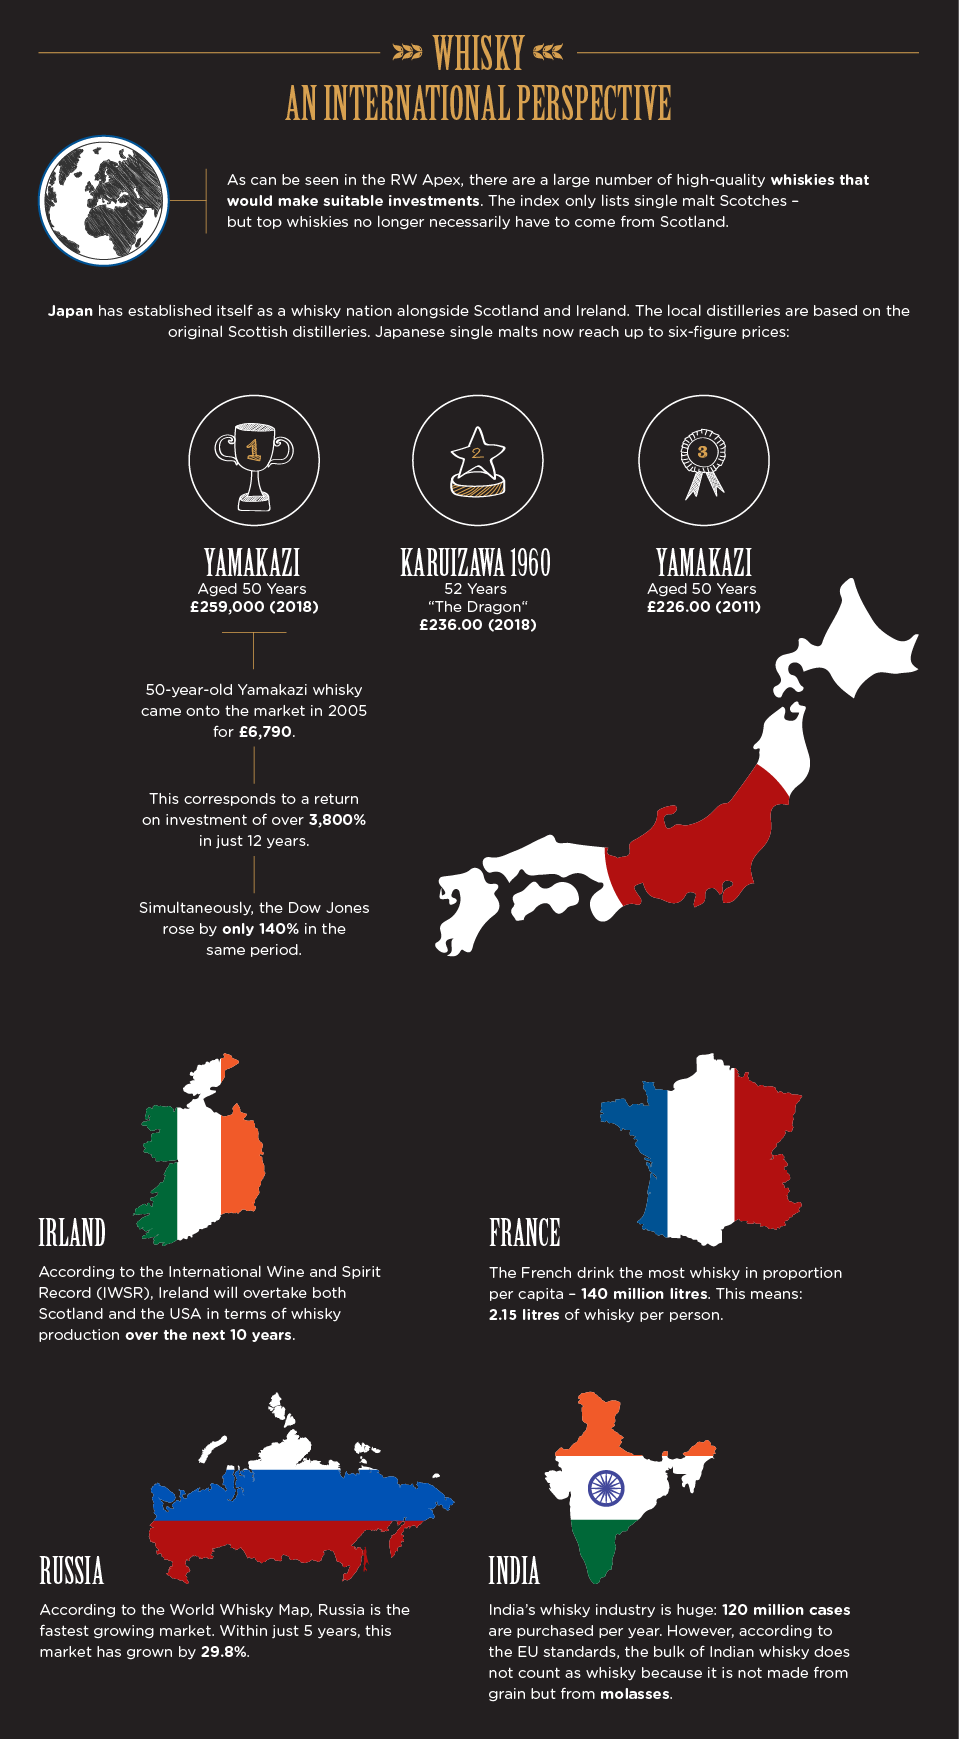 Top whisky producing countries